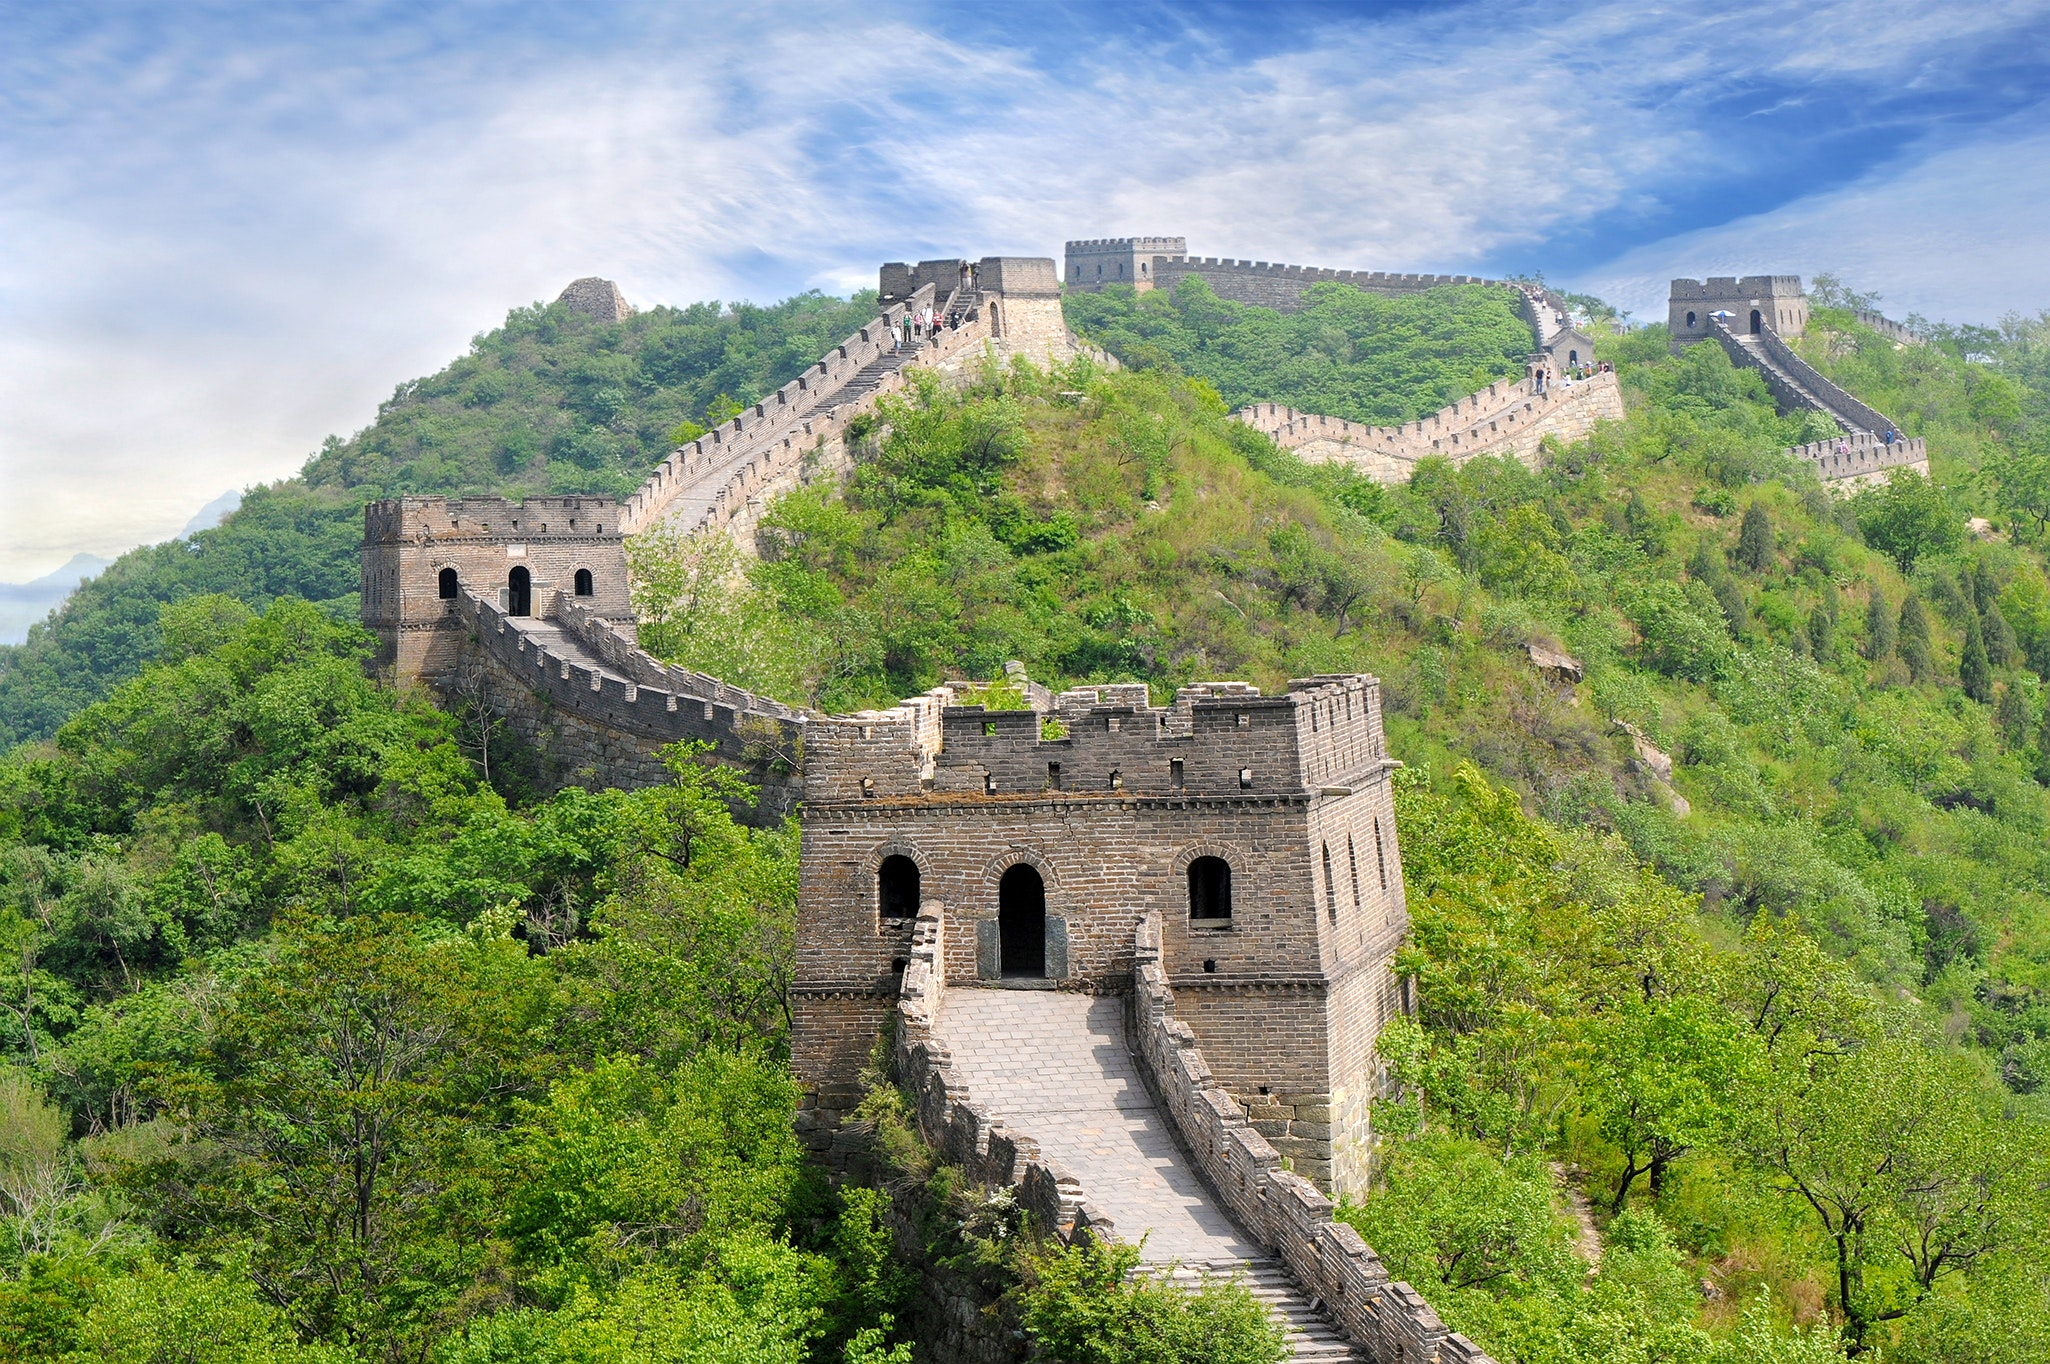 Many sections of the Great Wall of China were constructed during the Ming Dynasty between 1368 and 1644.